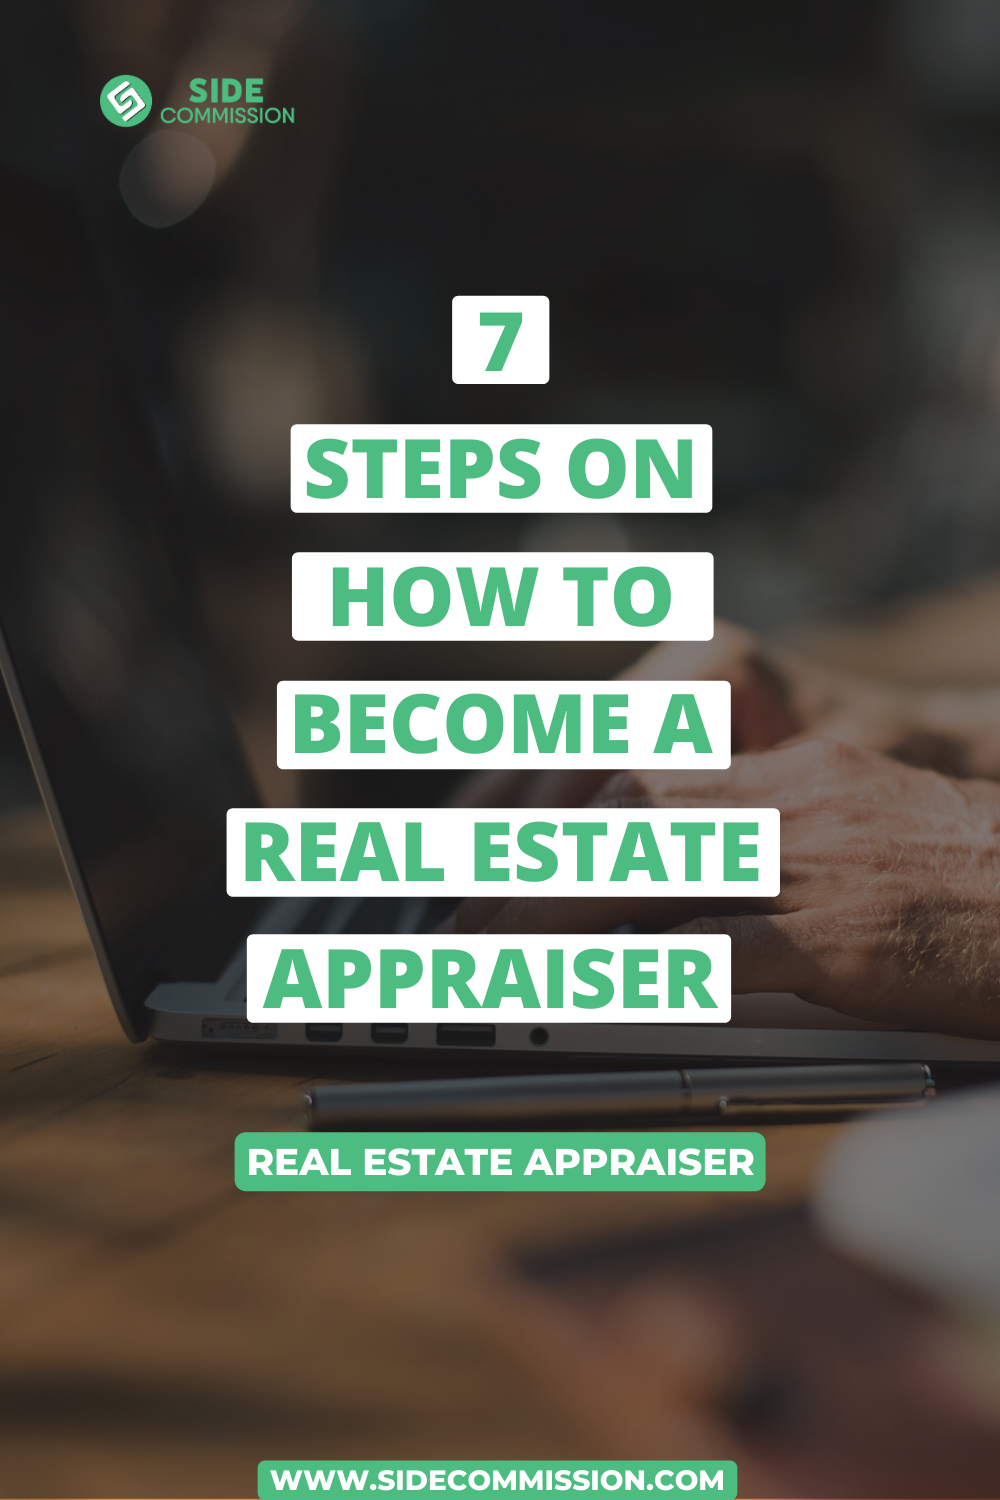 7 Steps On How To Become A Real Estate Appraiser In 2020 Real Estate Estates Real